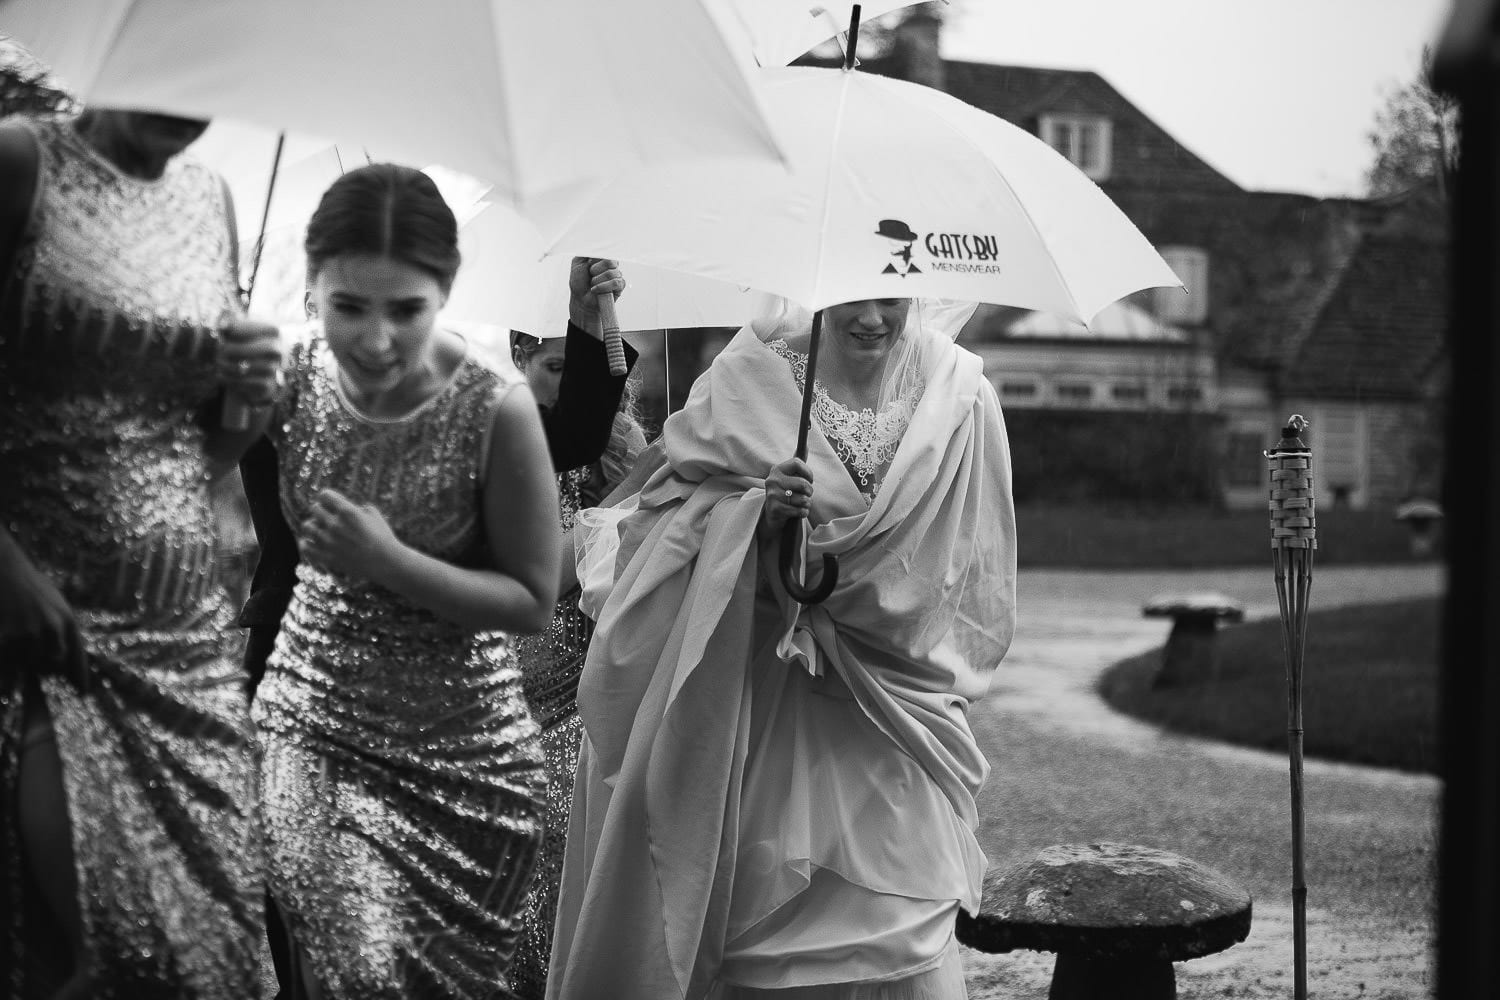 the bride arrives for the ceremony under an umbrella